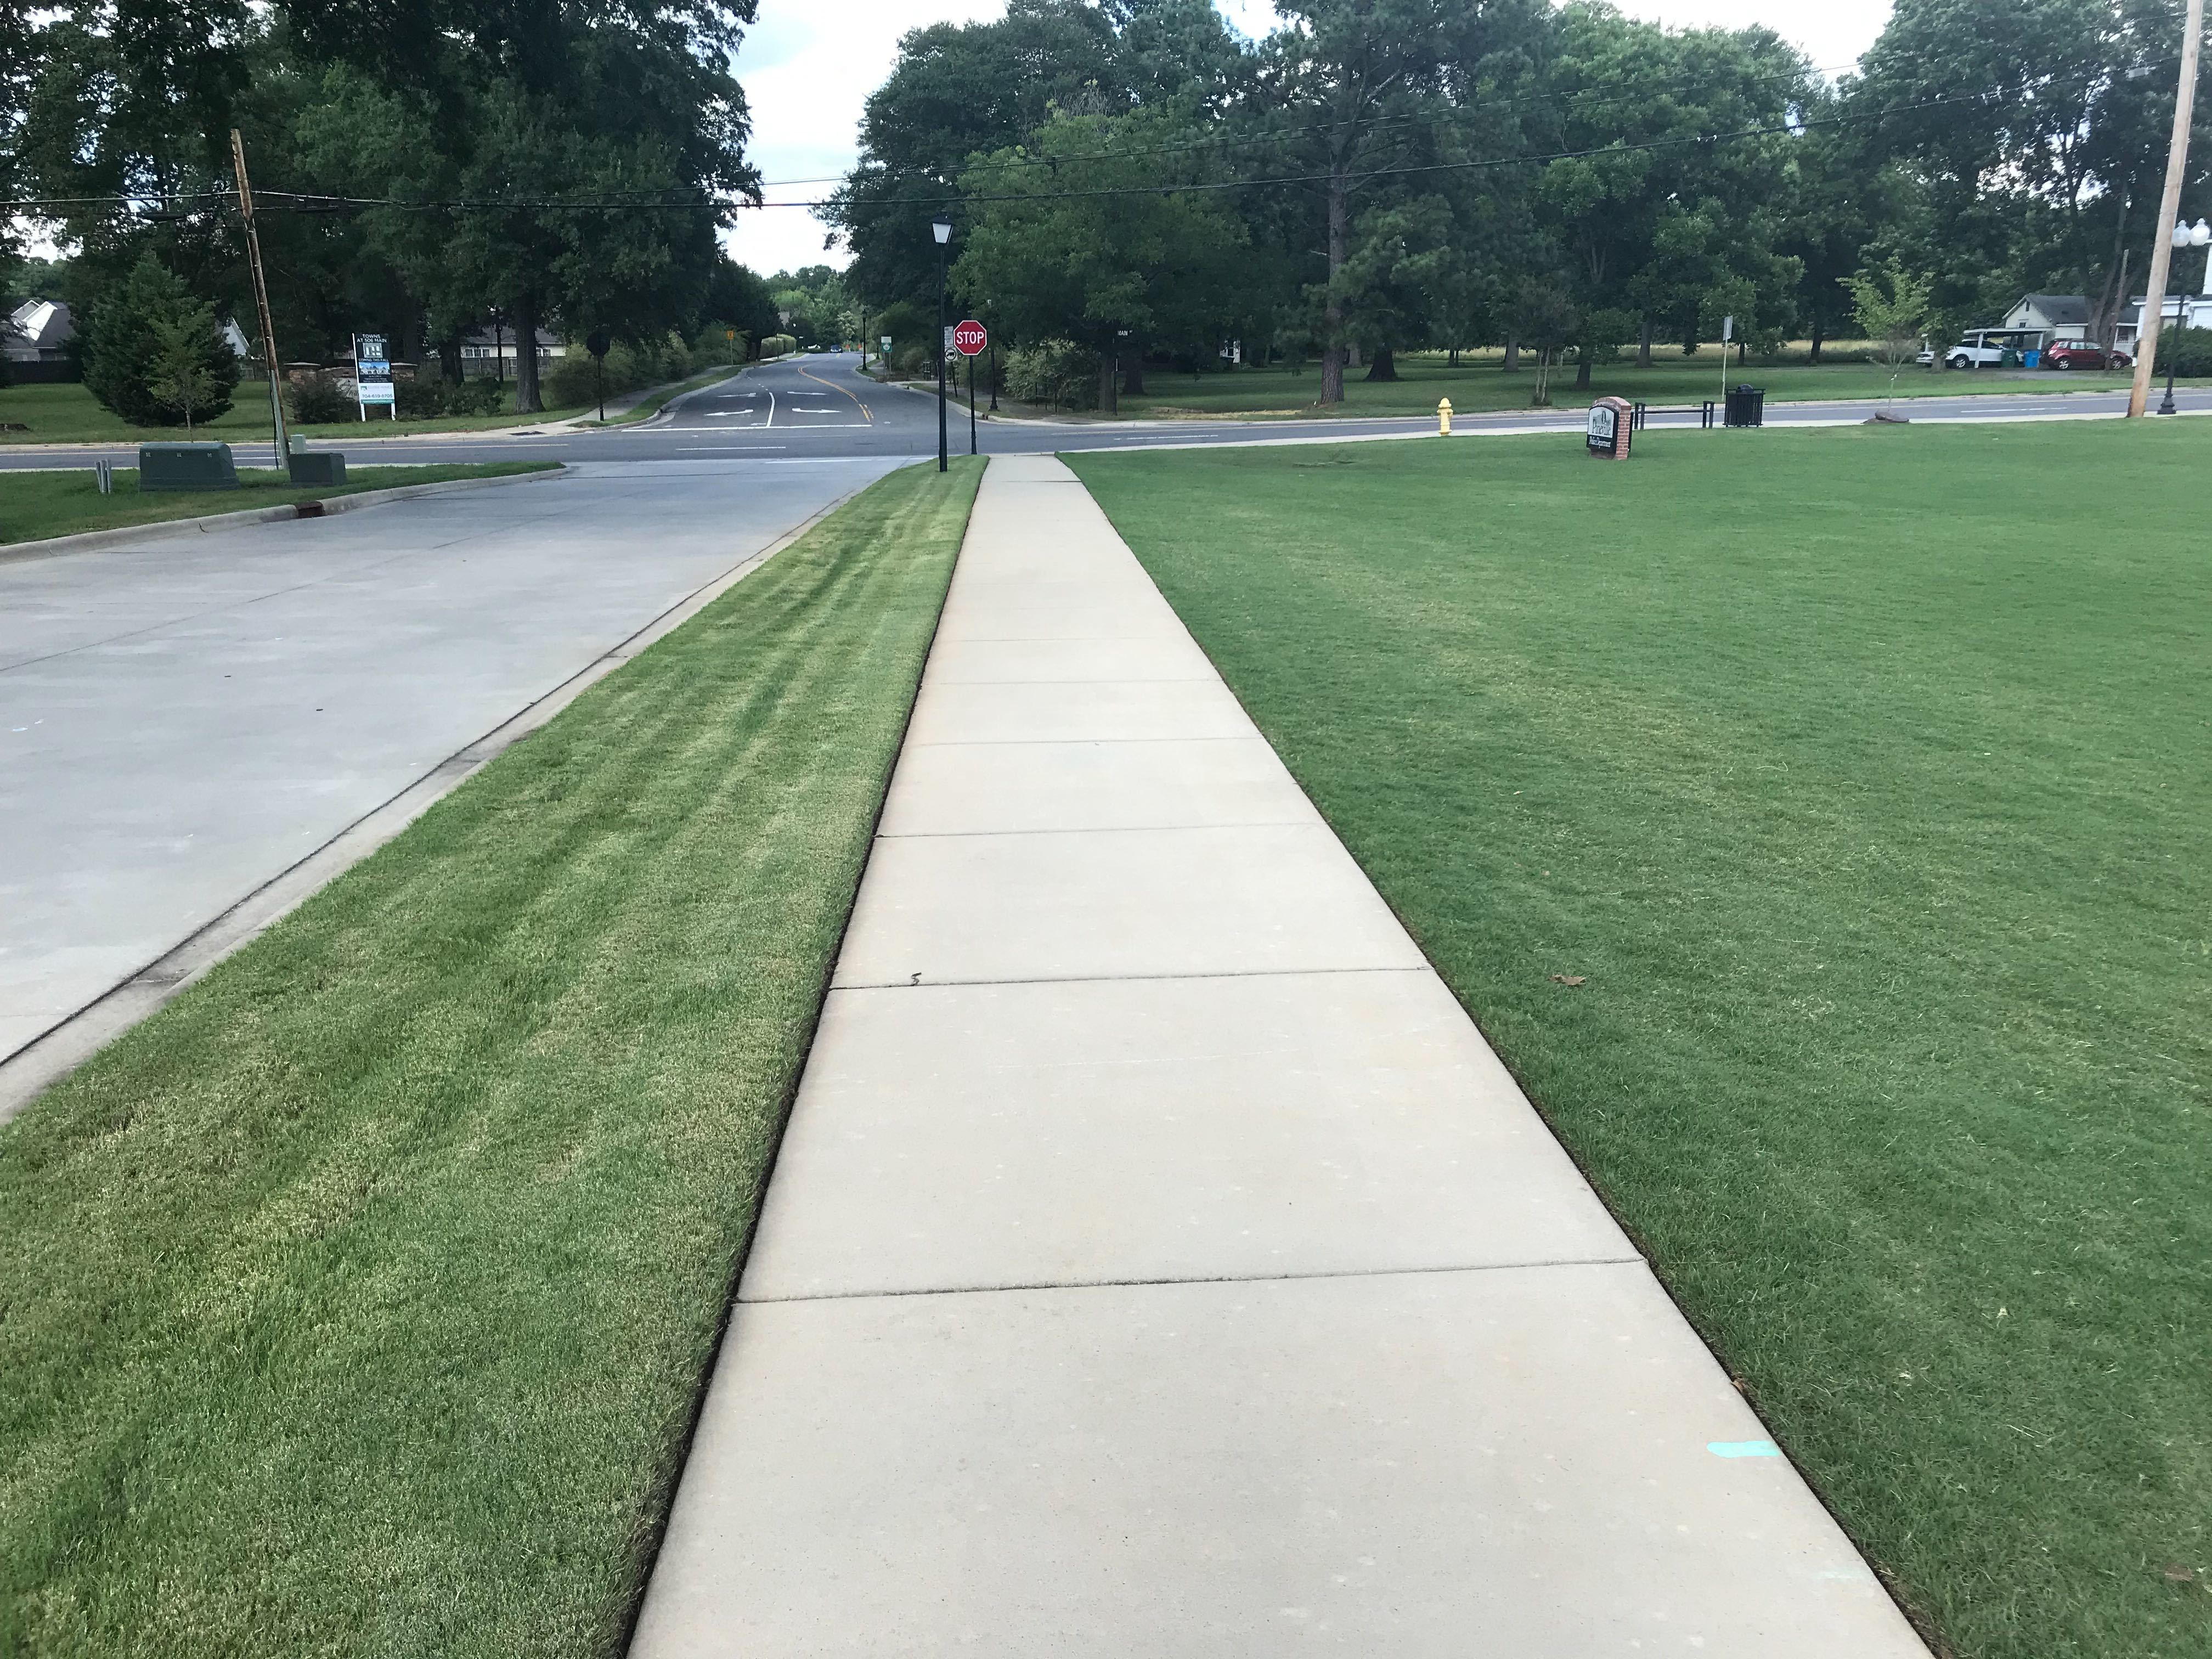 beauty strip mowed by traditional mower compared with lawn maintained by Automower